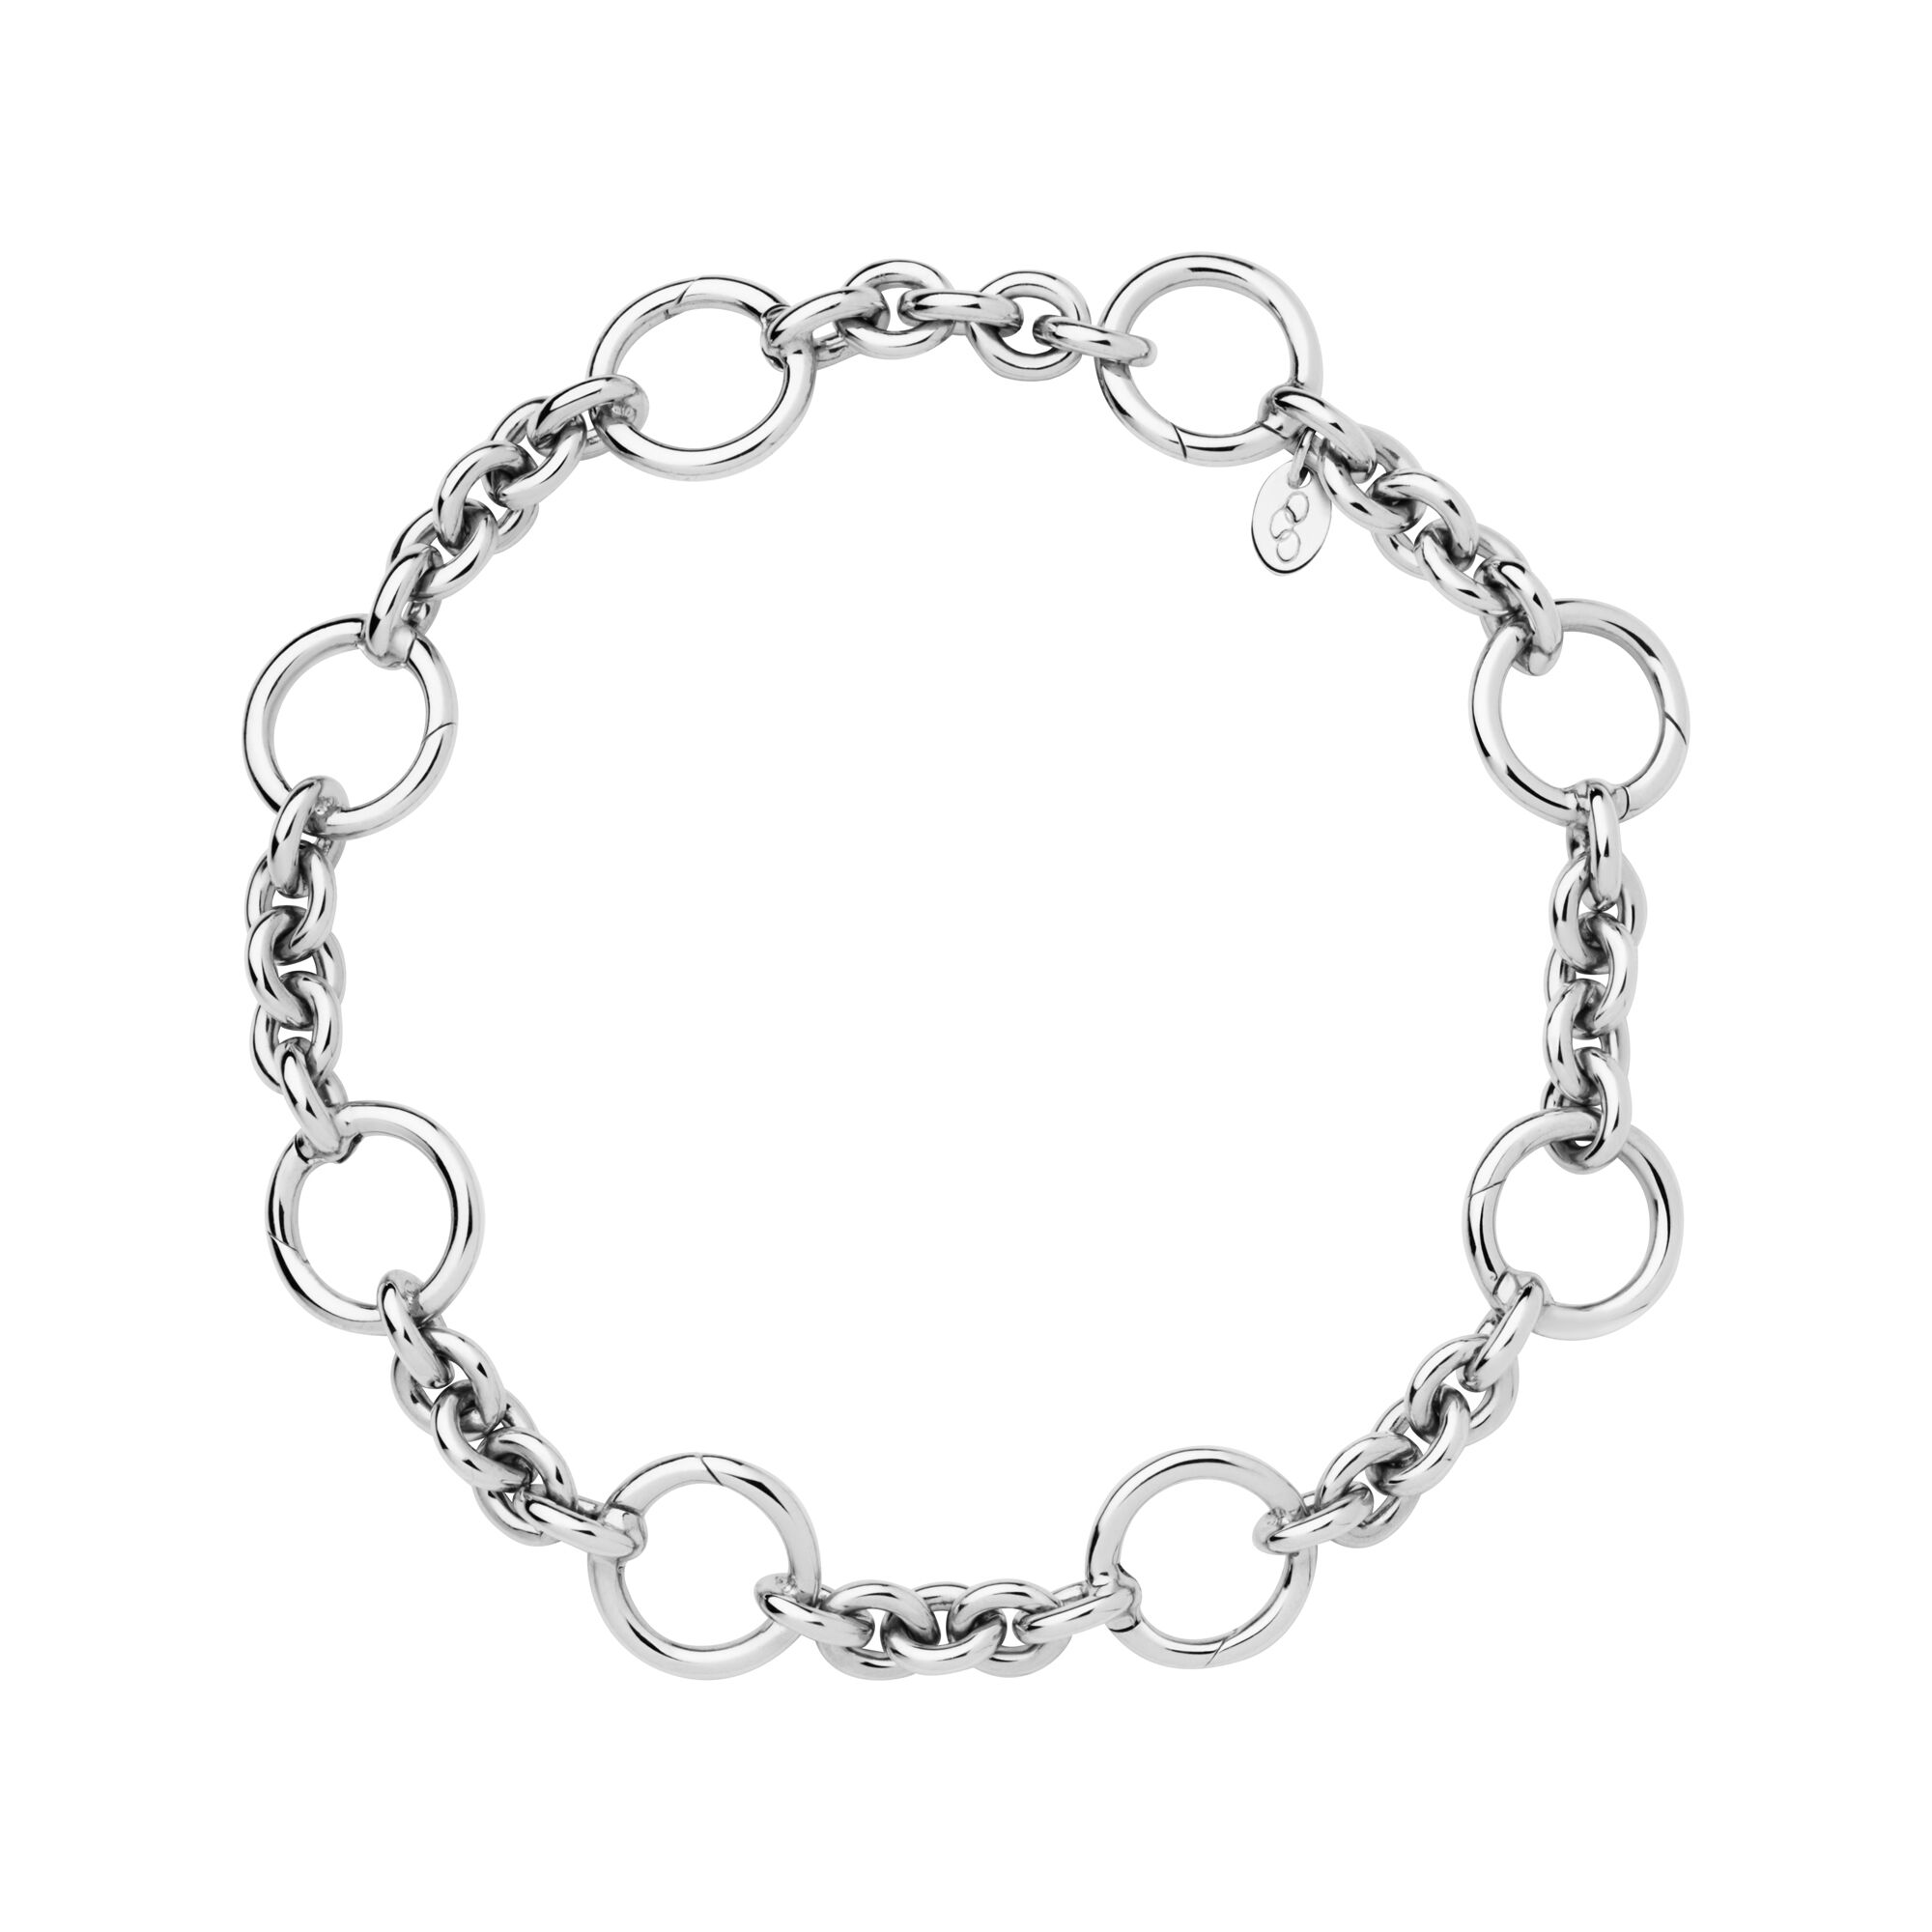 plated silver bangles mesh j rhodium heart jaz sterling with charm asp flexible bangle bracelet p